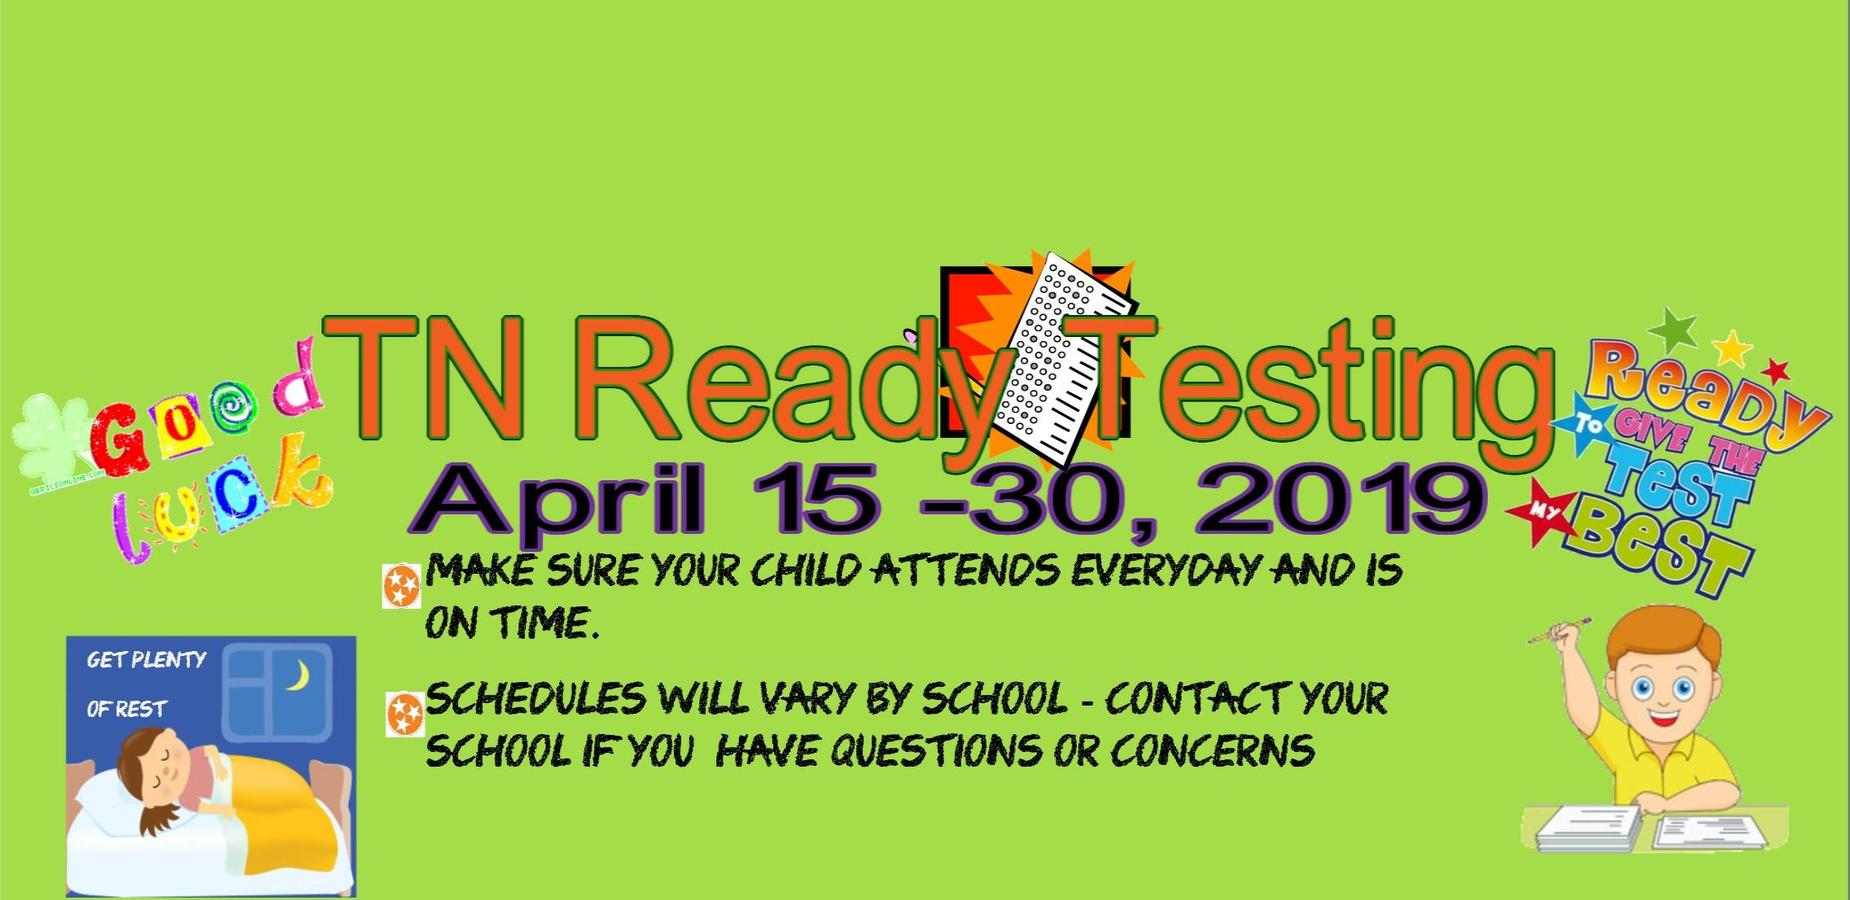 Tn Ready Testing Apr 15-30, 2019